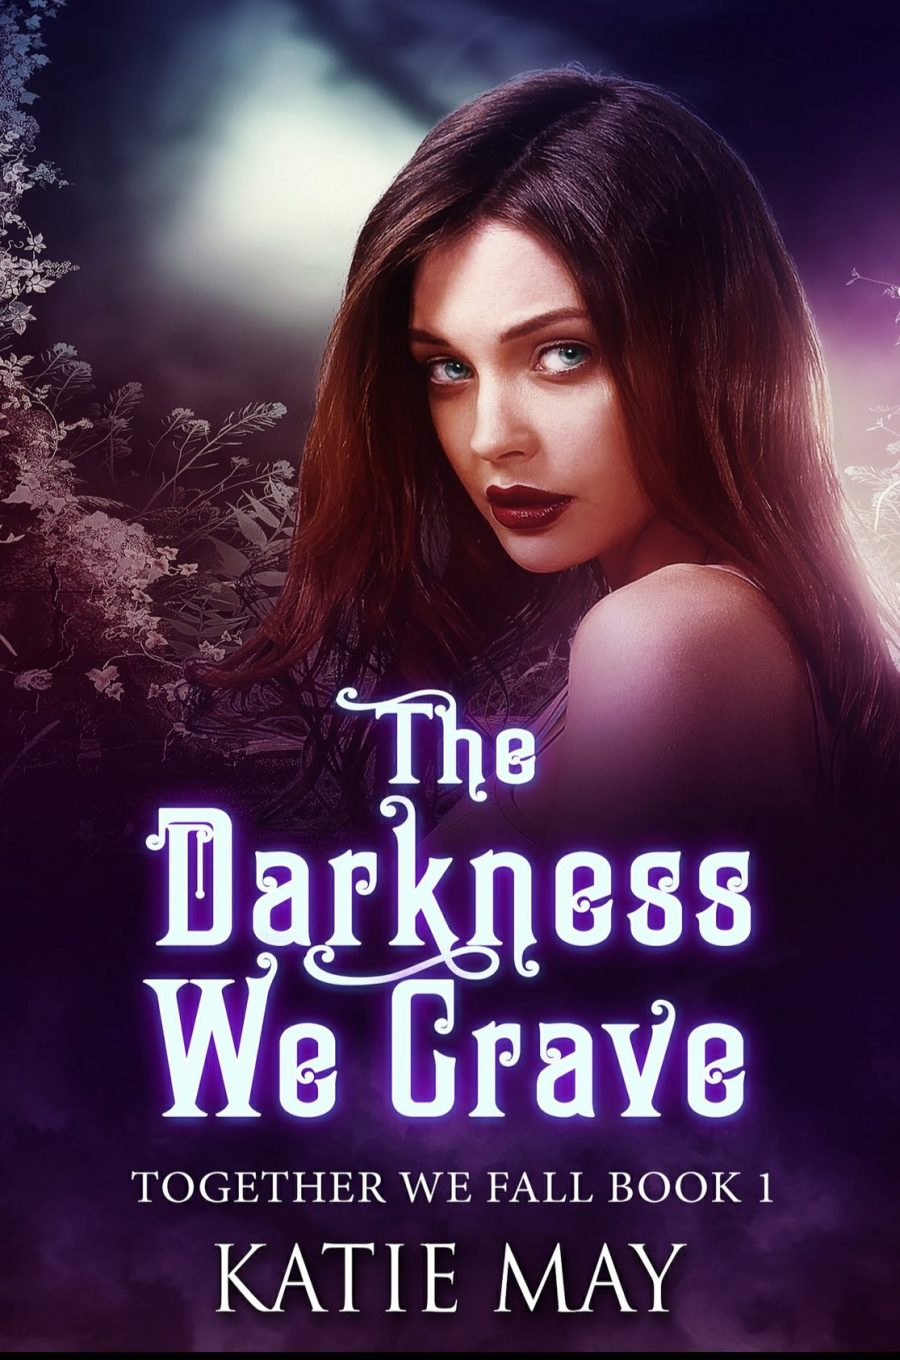 The Darkness We Crave by Katie May - A Book Review #BookReview #WhyChoose #RH #Dark #Series #YA/NA #Paranormal